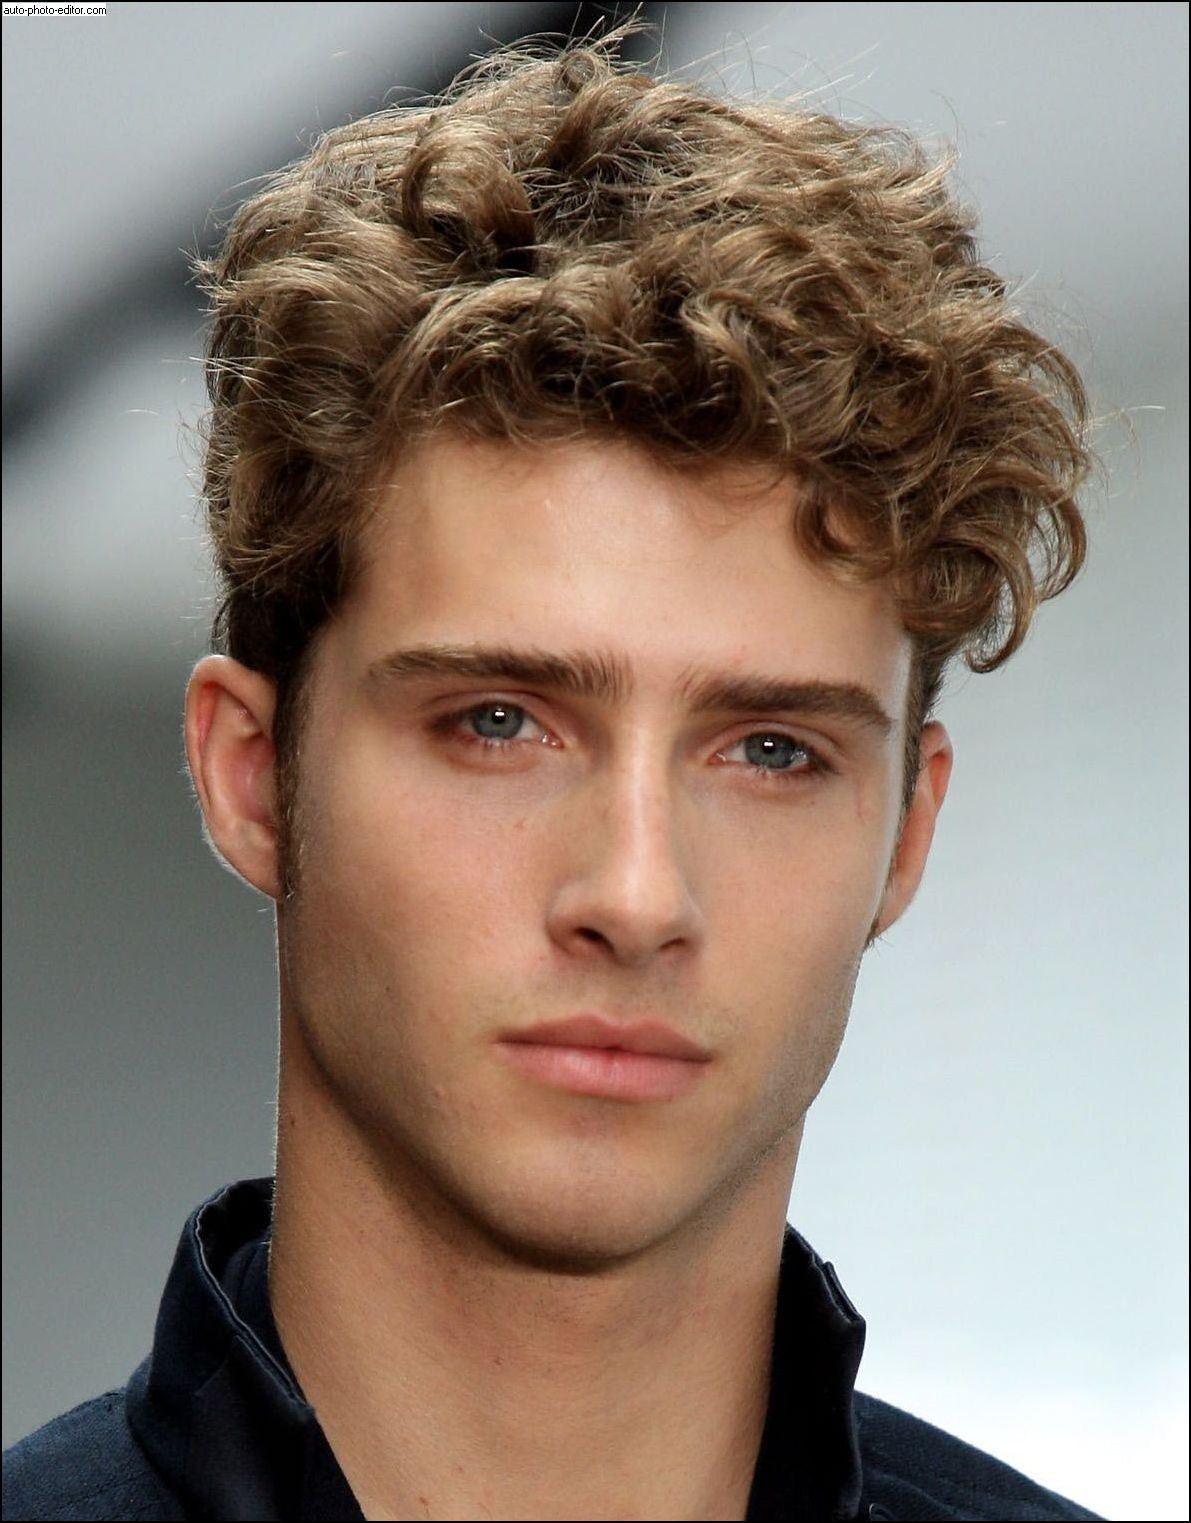 Trendy hairstyles for men with curly hair hairstyles pinterest